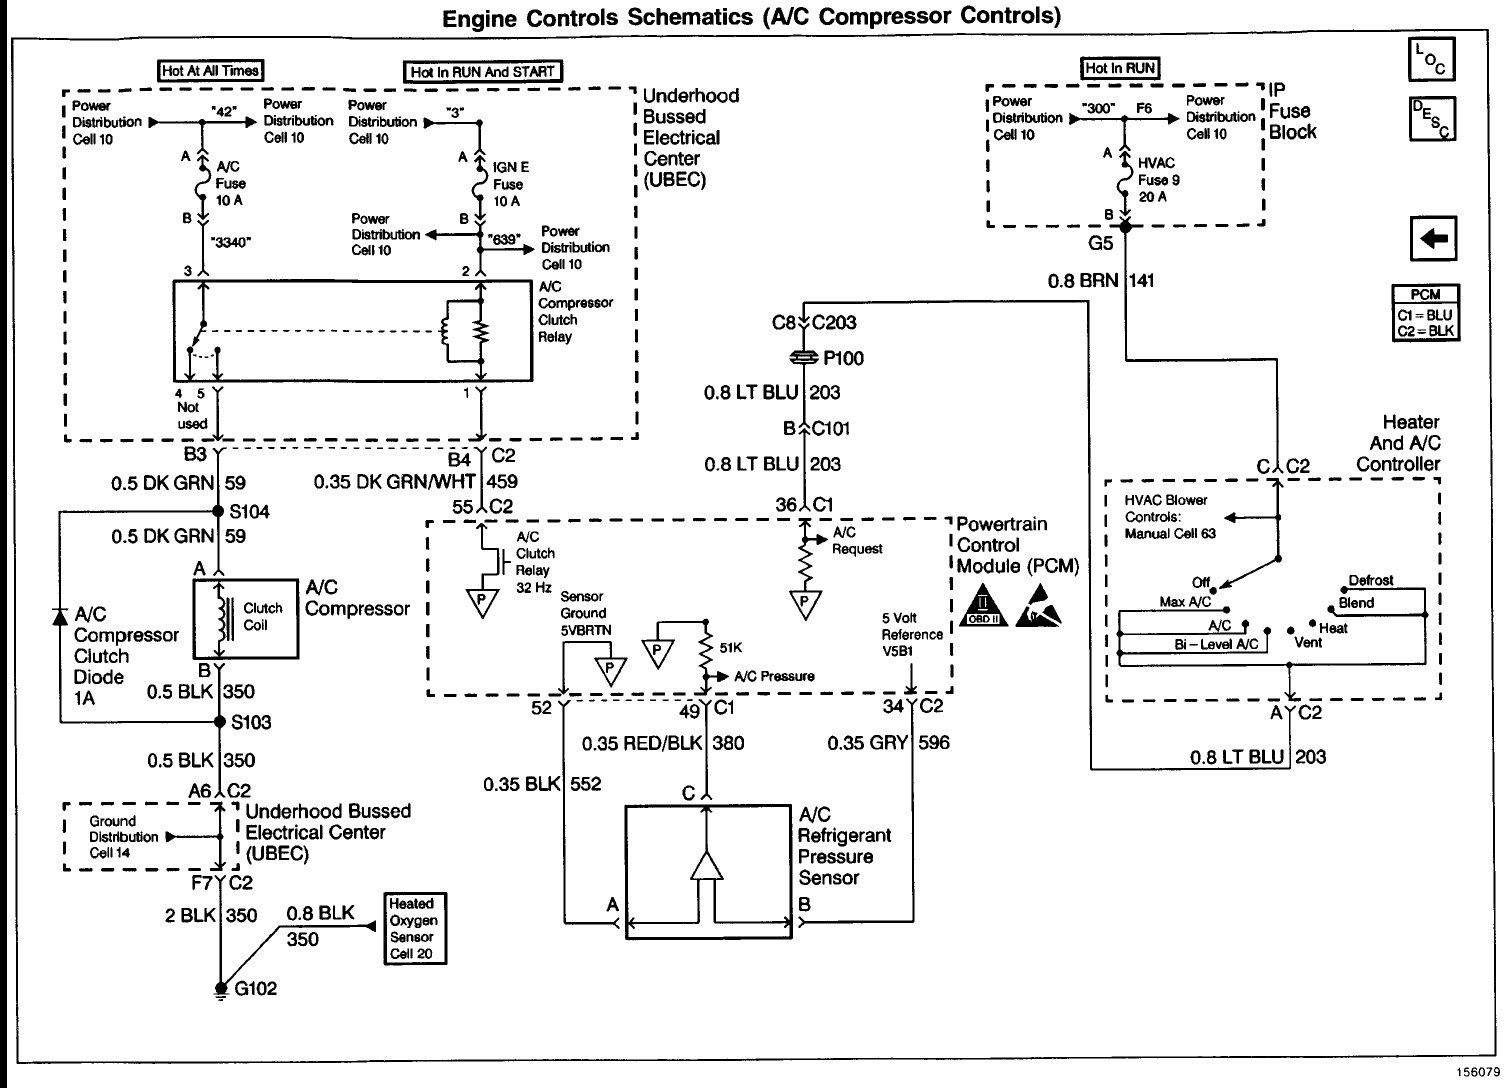 medium resolution of s10 pcm wiring schematic wiring diagram standards10 pcm wiring schematic wiring diagram blogs10 pcm wiring schematic